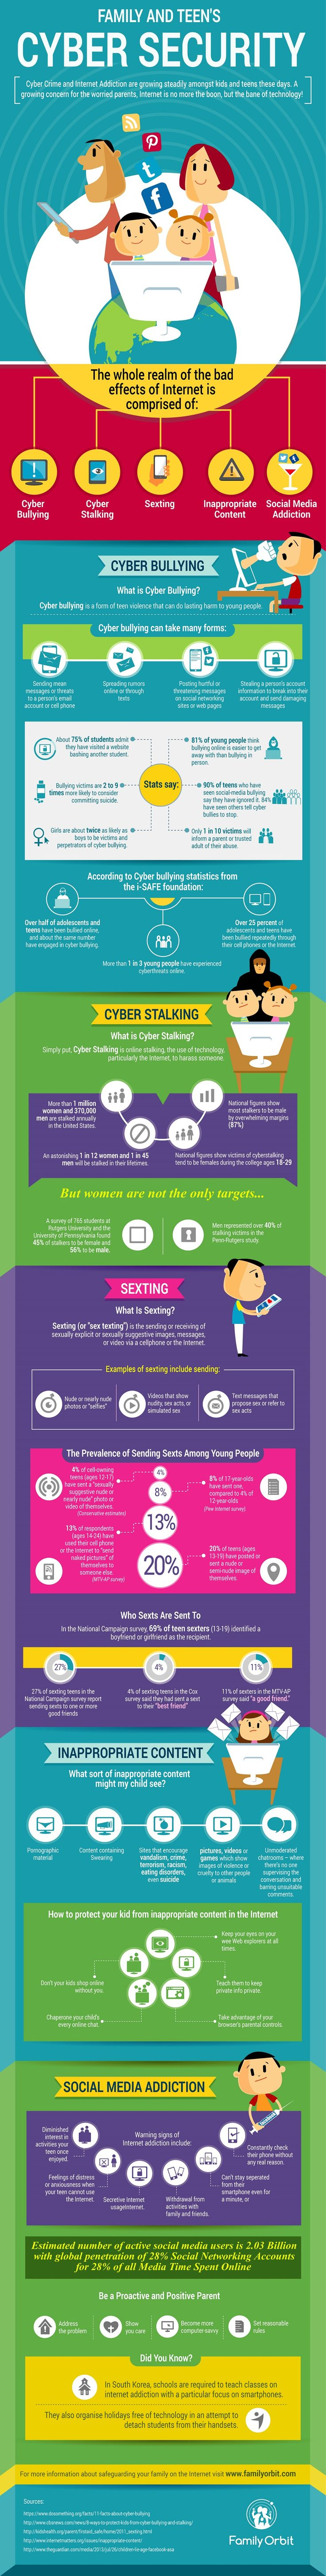 Family and Teen's Cyber Security Infographic - http://elearninginfographics.com/family-teens-cyber-security-infographic/